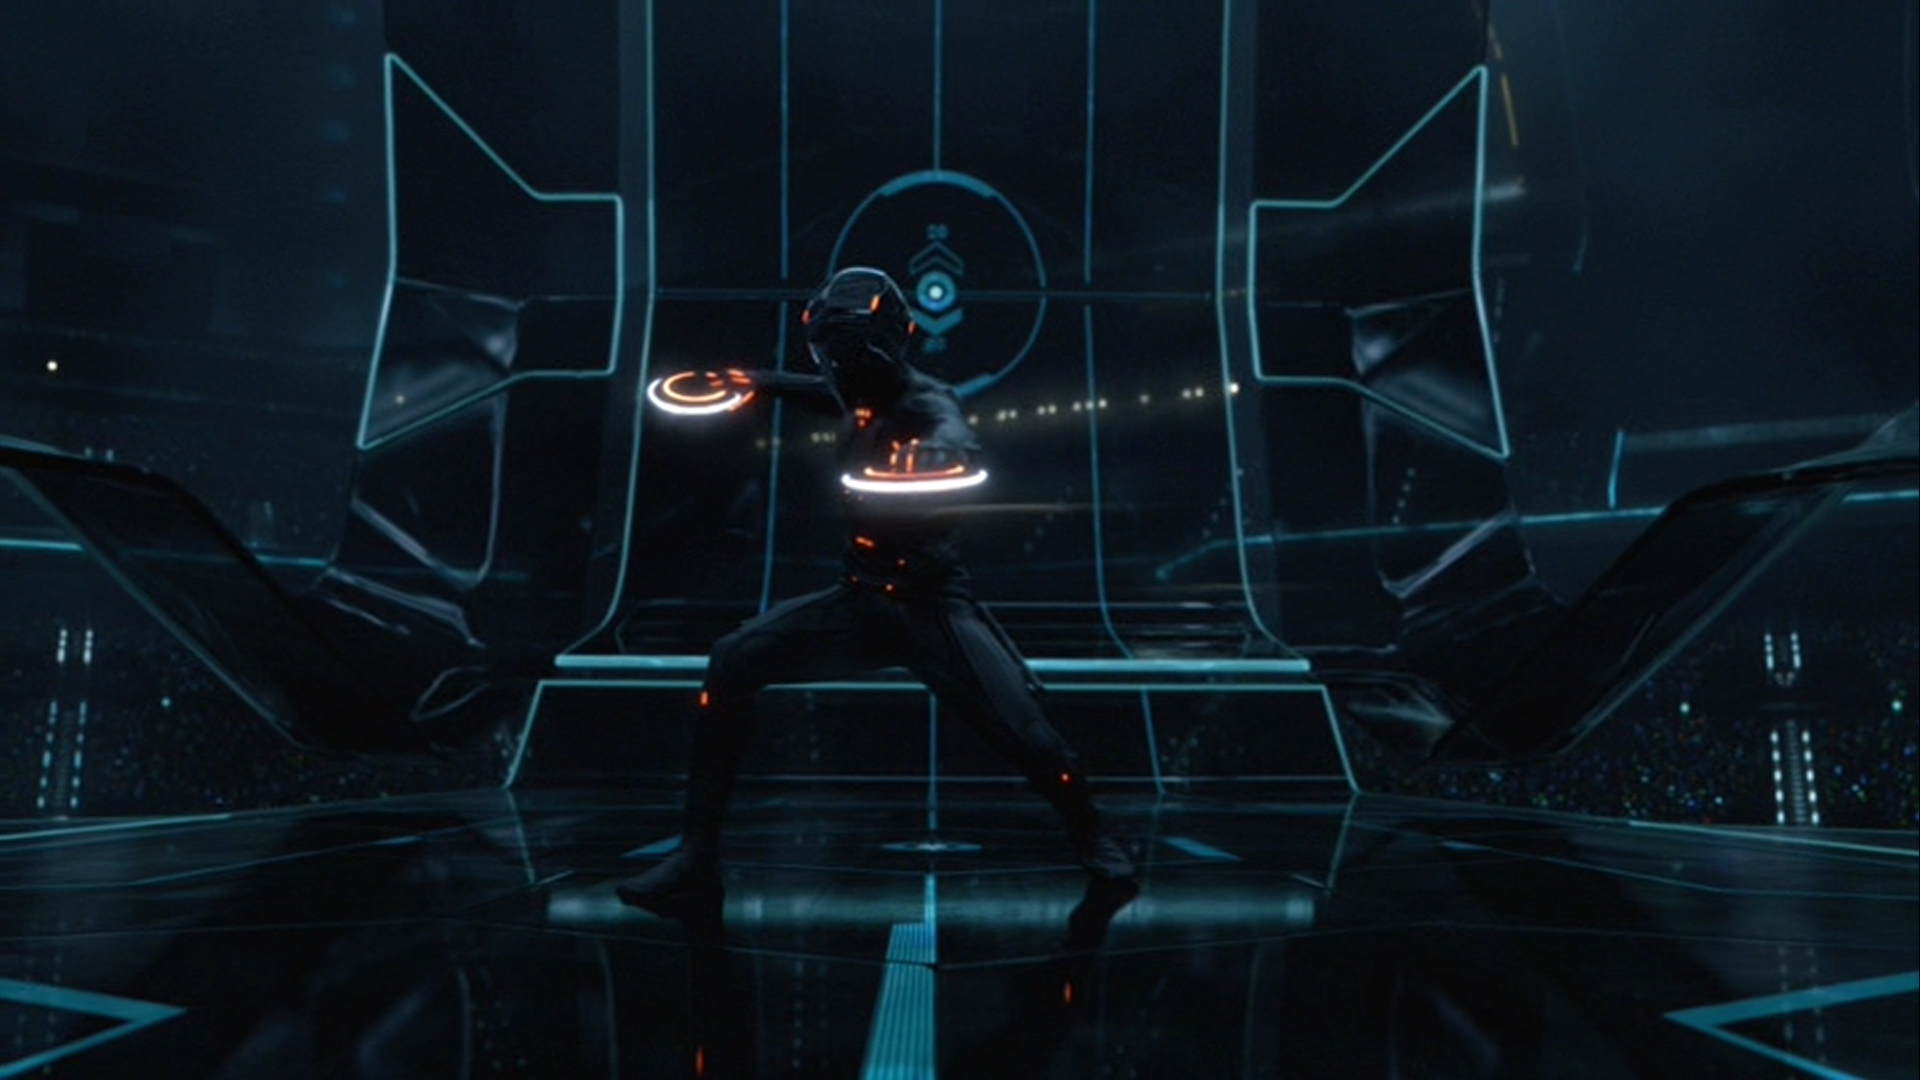 Tron-Legacy-Wallpaper-1080p